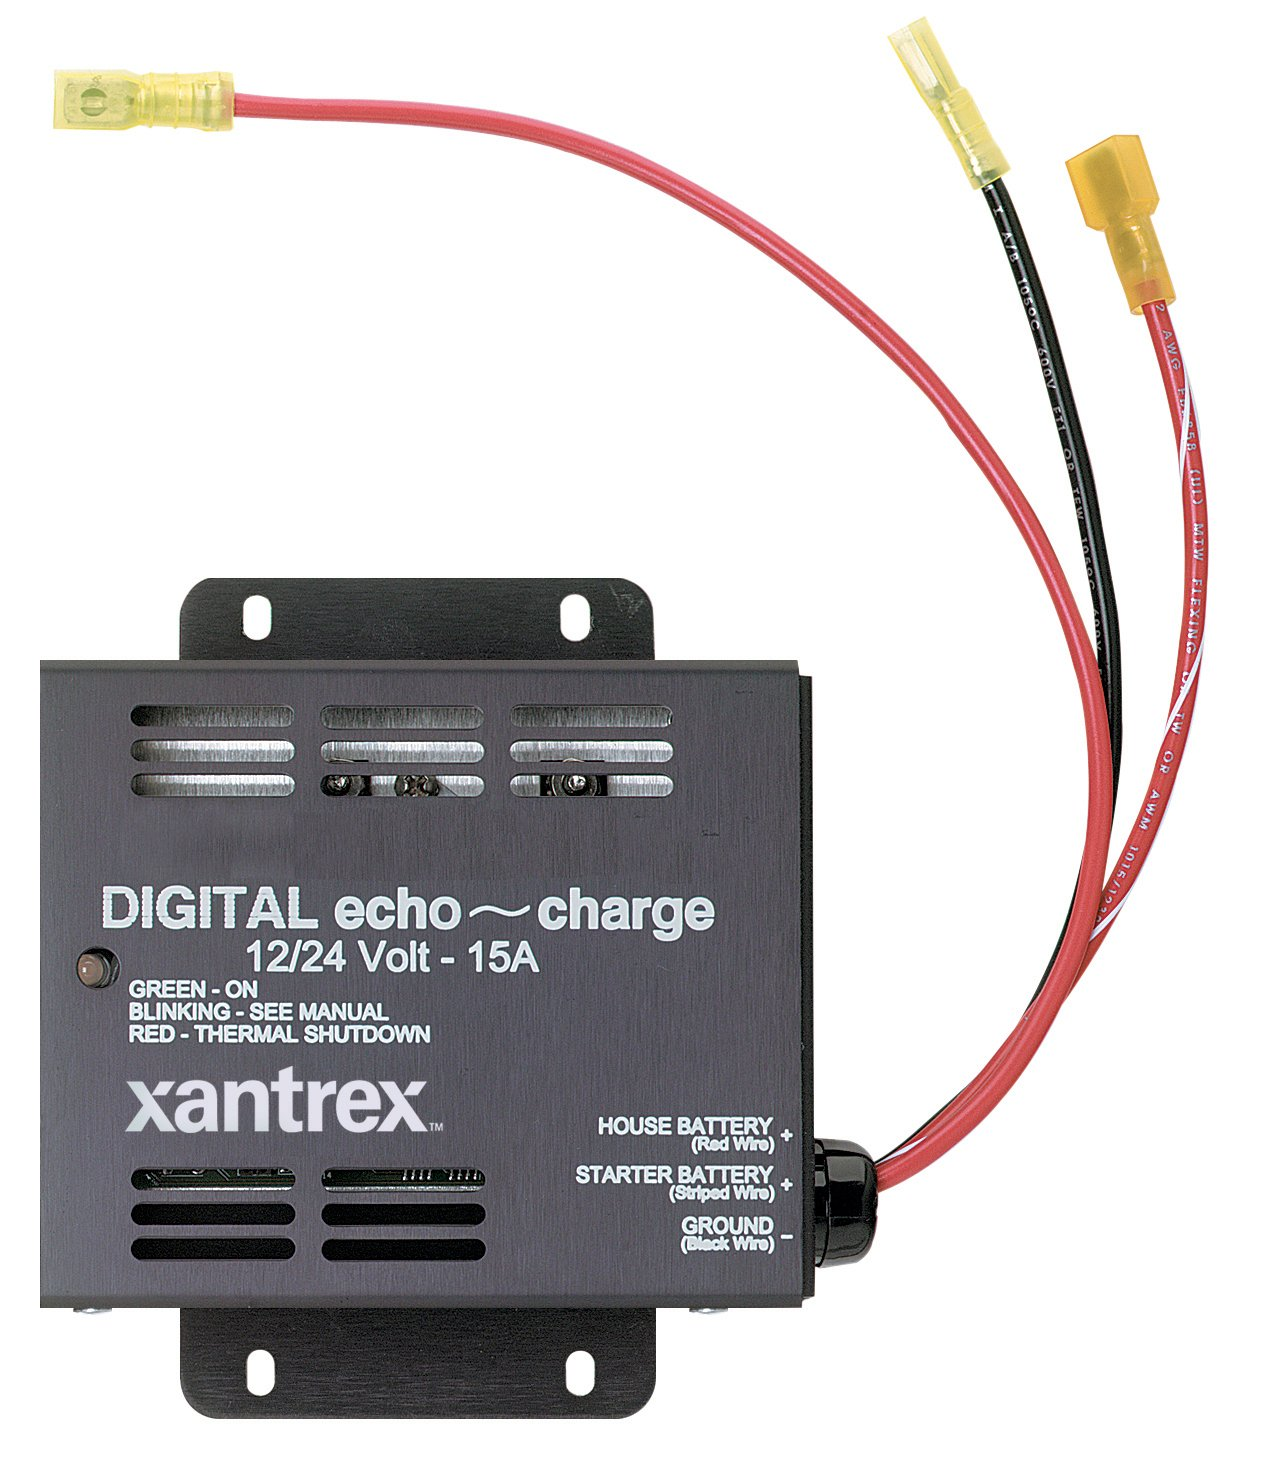 amazon com xantrex 82 0123 01 echo charge for 12 and 24v systems amazon com xantrex 82 0123 01 echo charge for 12 and 24v systems xantrex cell phones accessories